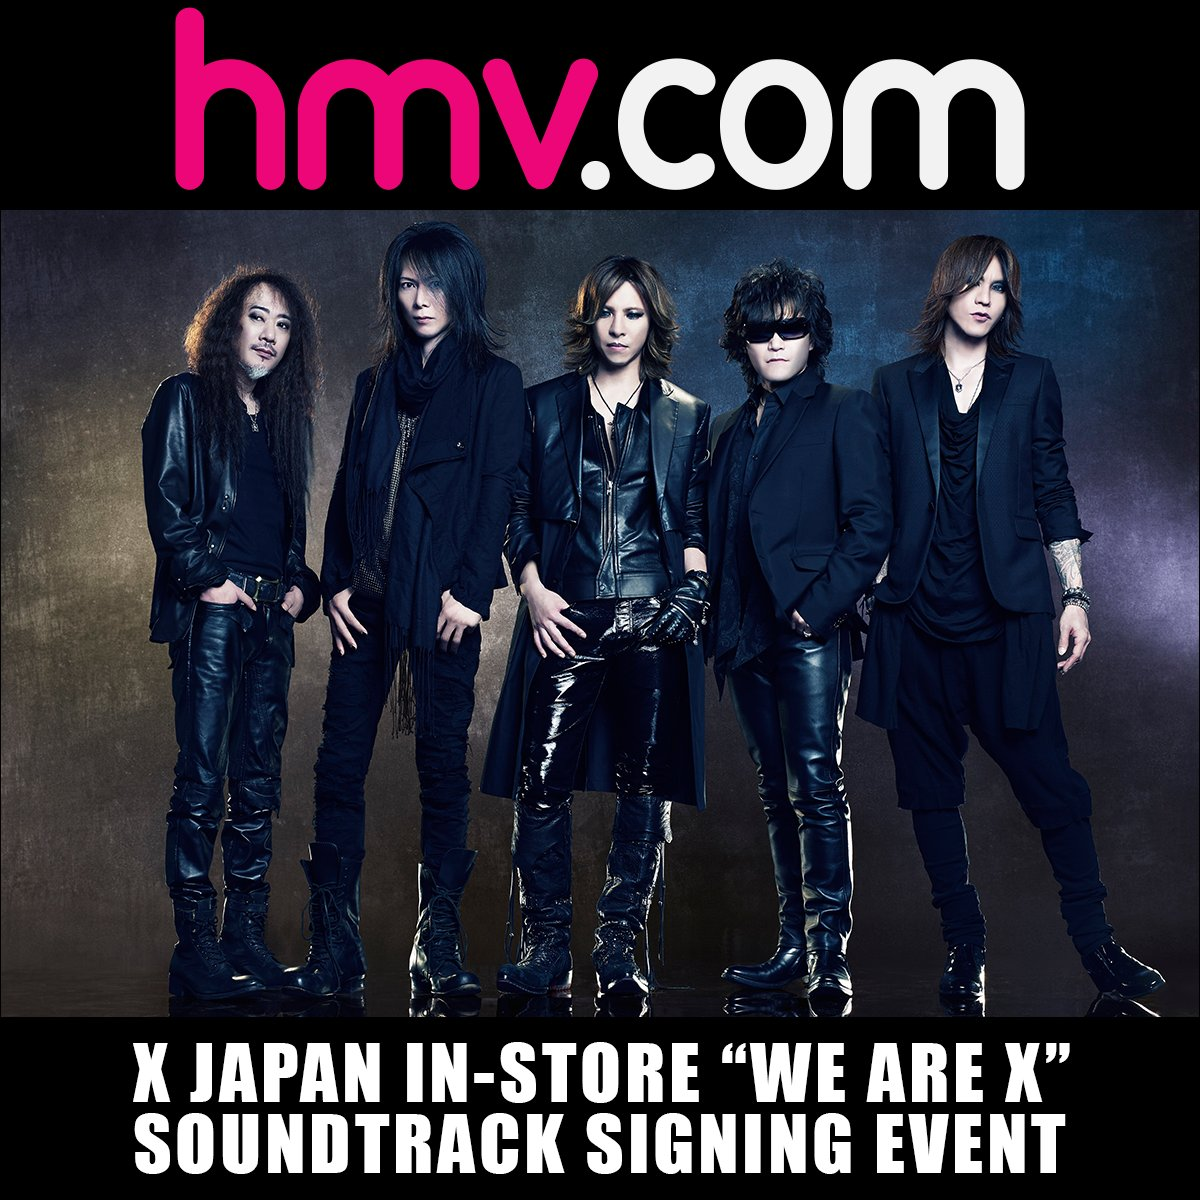 #XJapan in-store #WeAreX soundtrack signing event at HMV #London Friday March 3! #Wembley Arena concert March 4!  http:// hmv.co/XJapan  &nbsp;  <br>http://pic.twitter.com/dupNxGVWKr